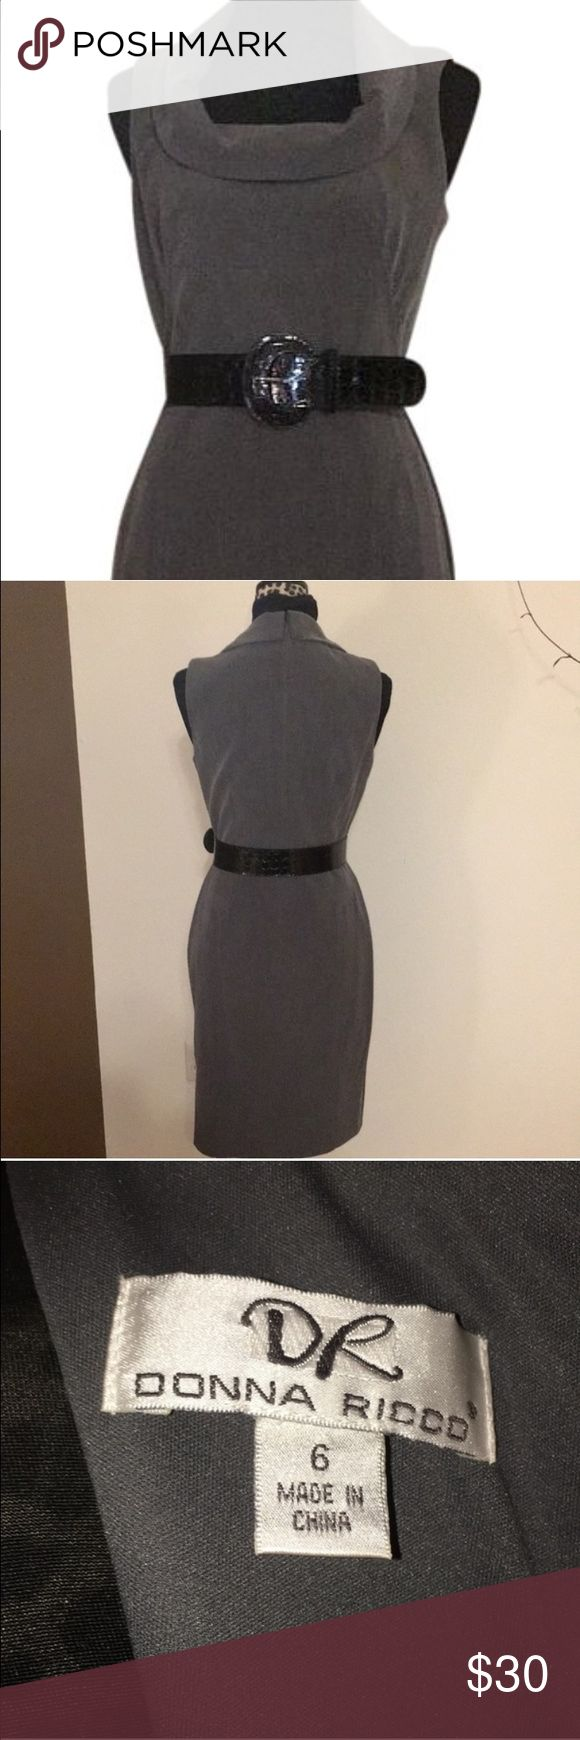 Donna Ricco Sleeveless Grey Cowl Neck Dress Beautiful grey sleeveless dress with full back zip. Cowl style neck and fitted design make this a perfect dress for work or play.  Belt that came with the dress included. Pair it with a black blazer for the office or a cute cardigan for a more casual look. Donna Ricco Dresses